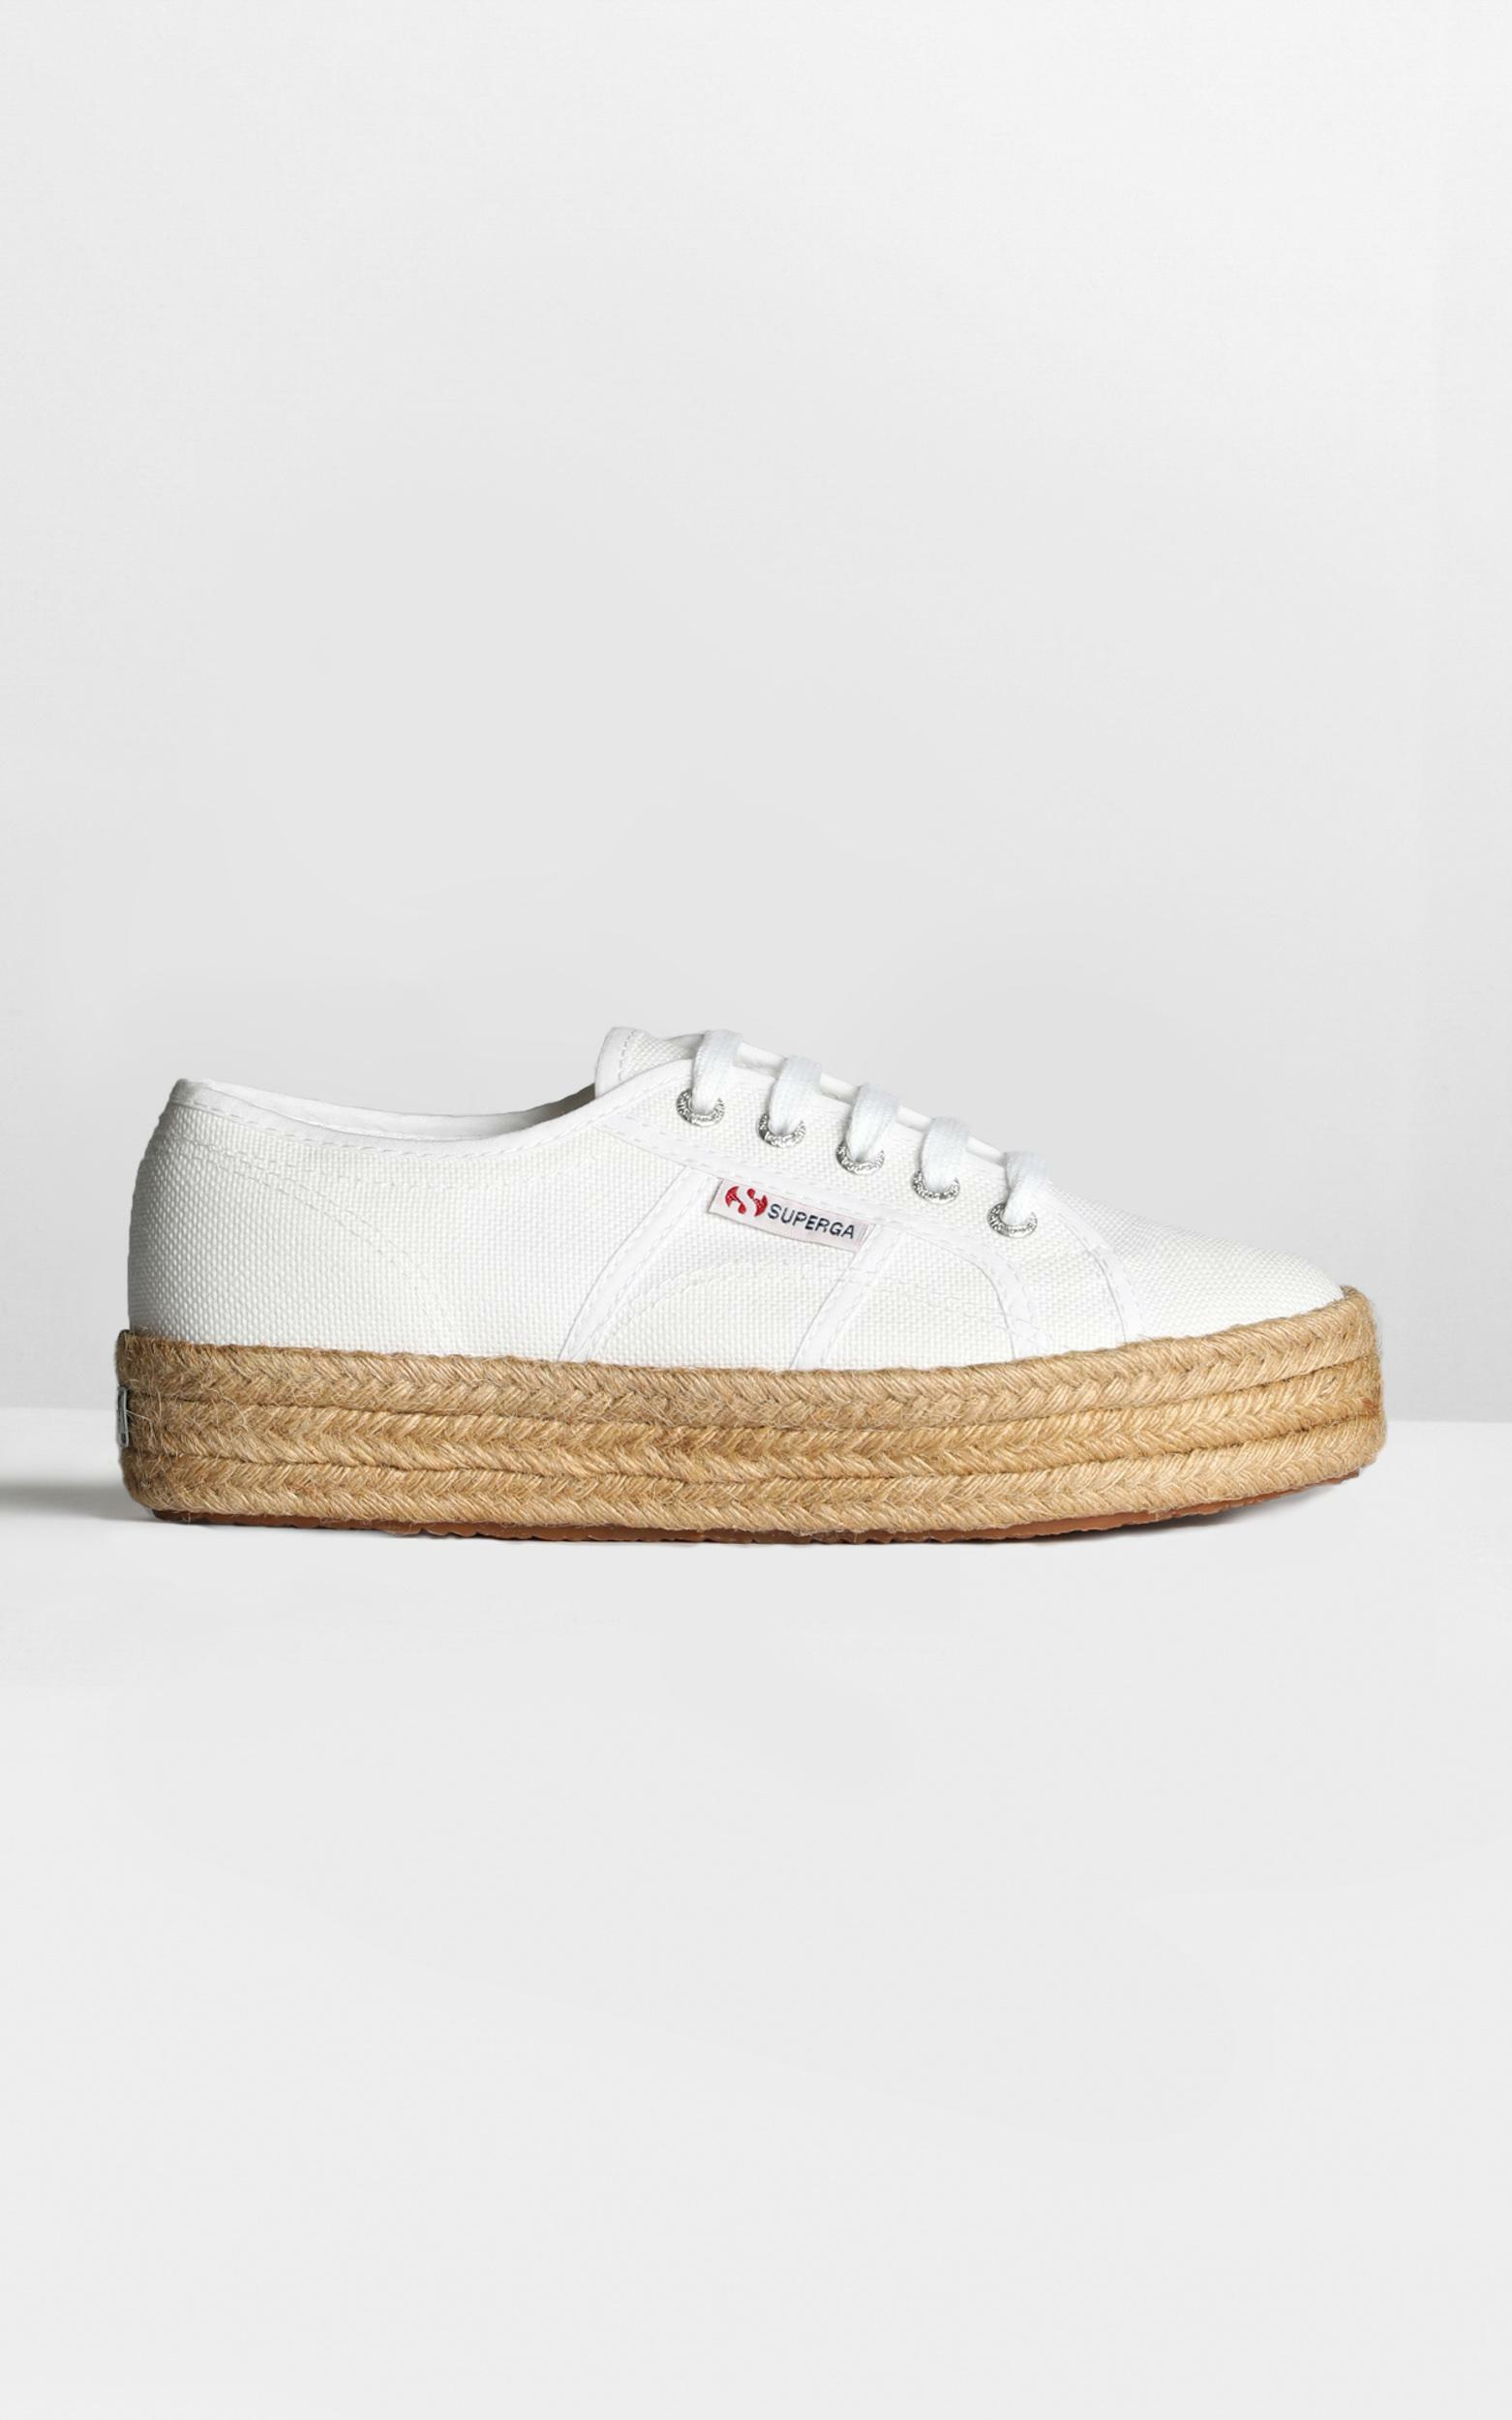 Superga - 2730 Cotropew  Sneakers in white canvas - 6.5, WHT2, hi-res image number null